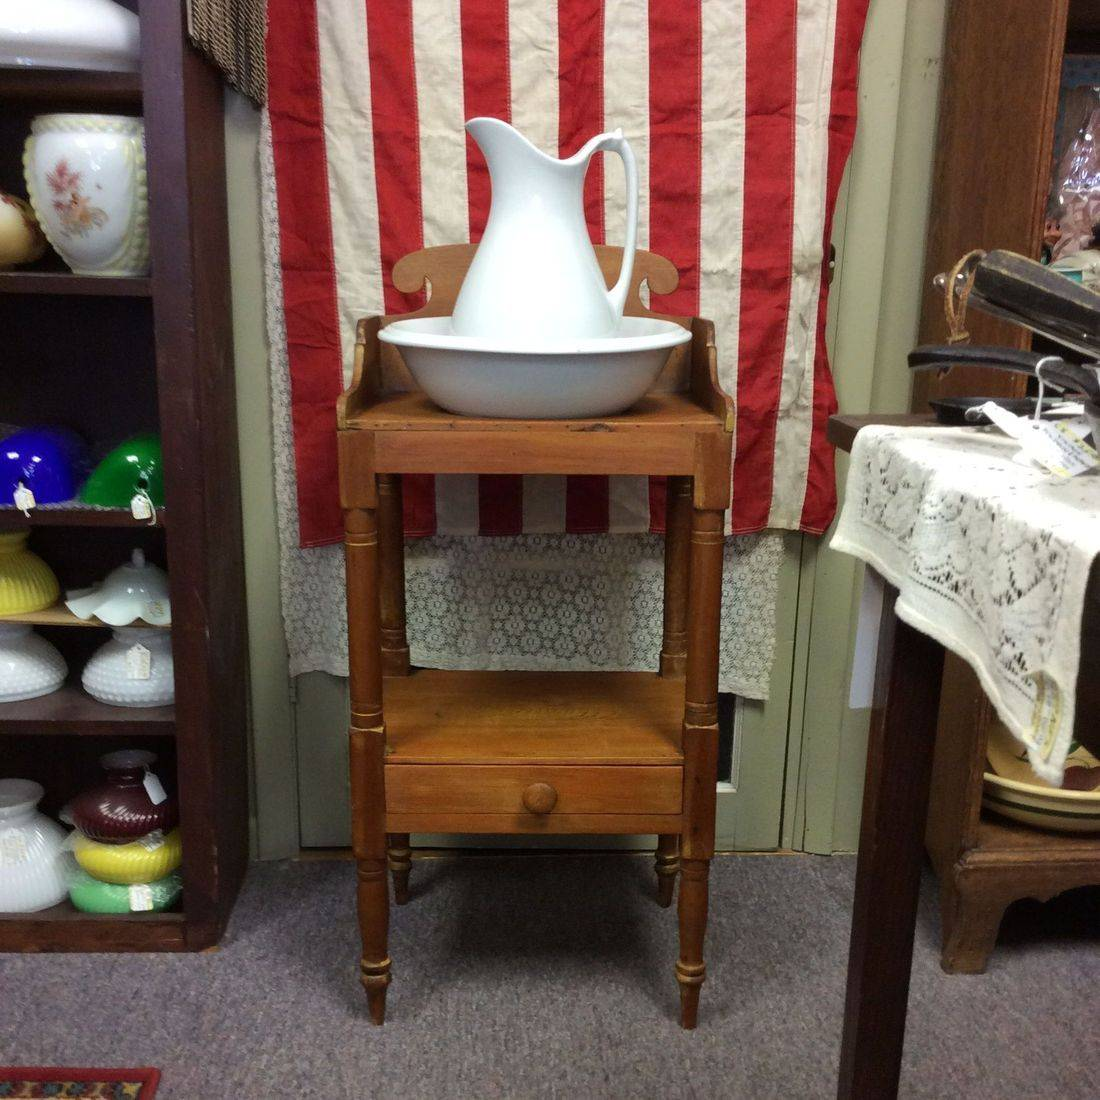 1850's/70's Maple Wash Stand w/J&G Meakin Pitcher and Henry Alcock Co. Wash Bowl   $175.00